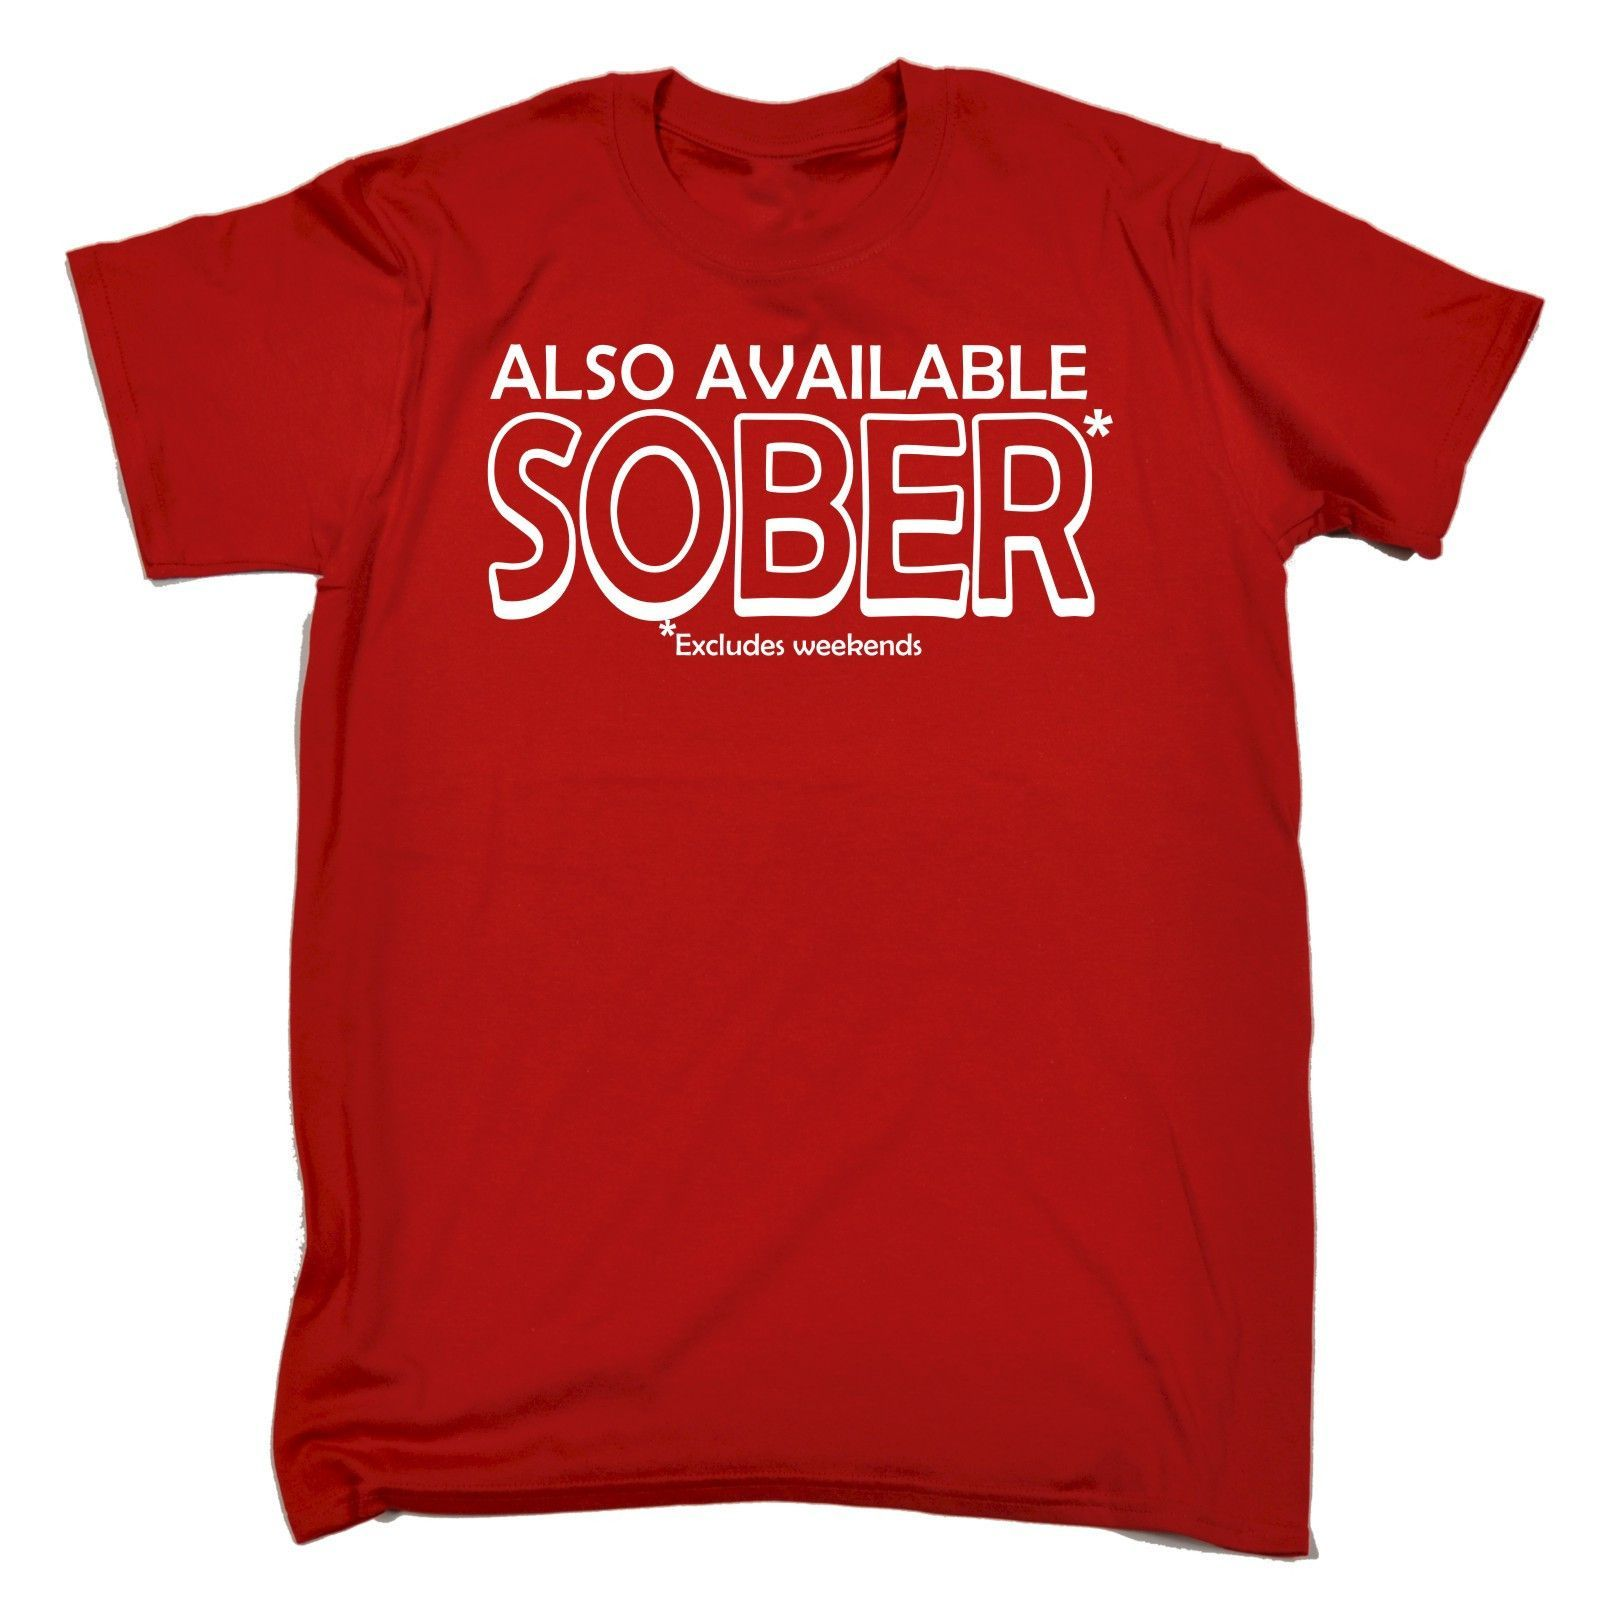 79f1a755ed Buy 123t Men's Also Available Sober Excludes Weekends Funny T-Shirt ...